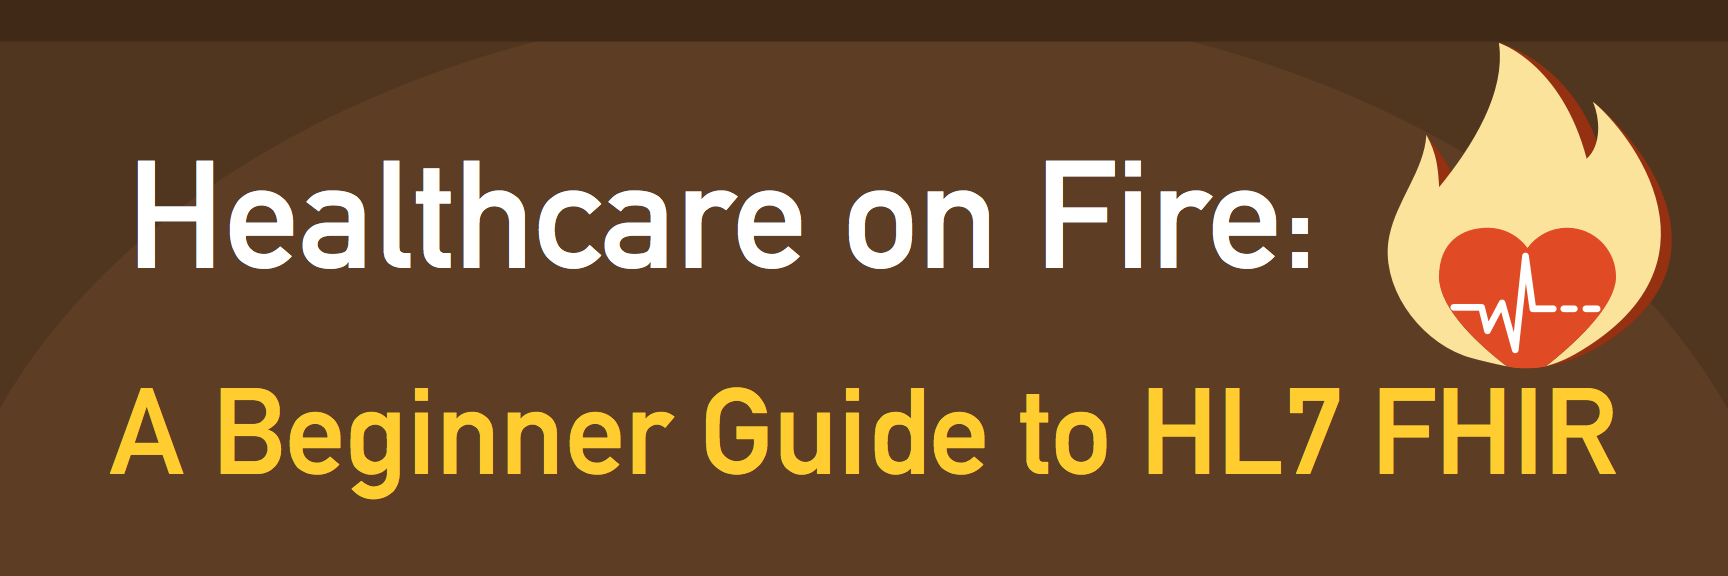 healthcare on fire a beginner guide to HL7 FHIR